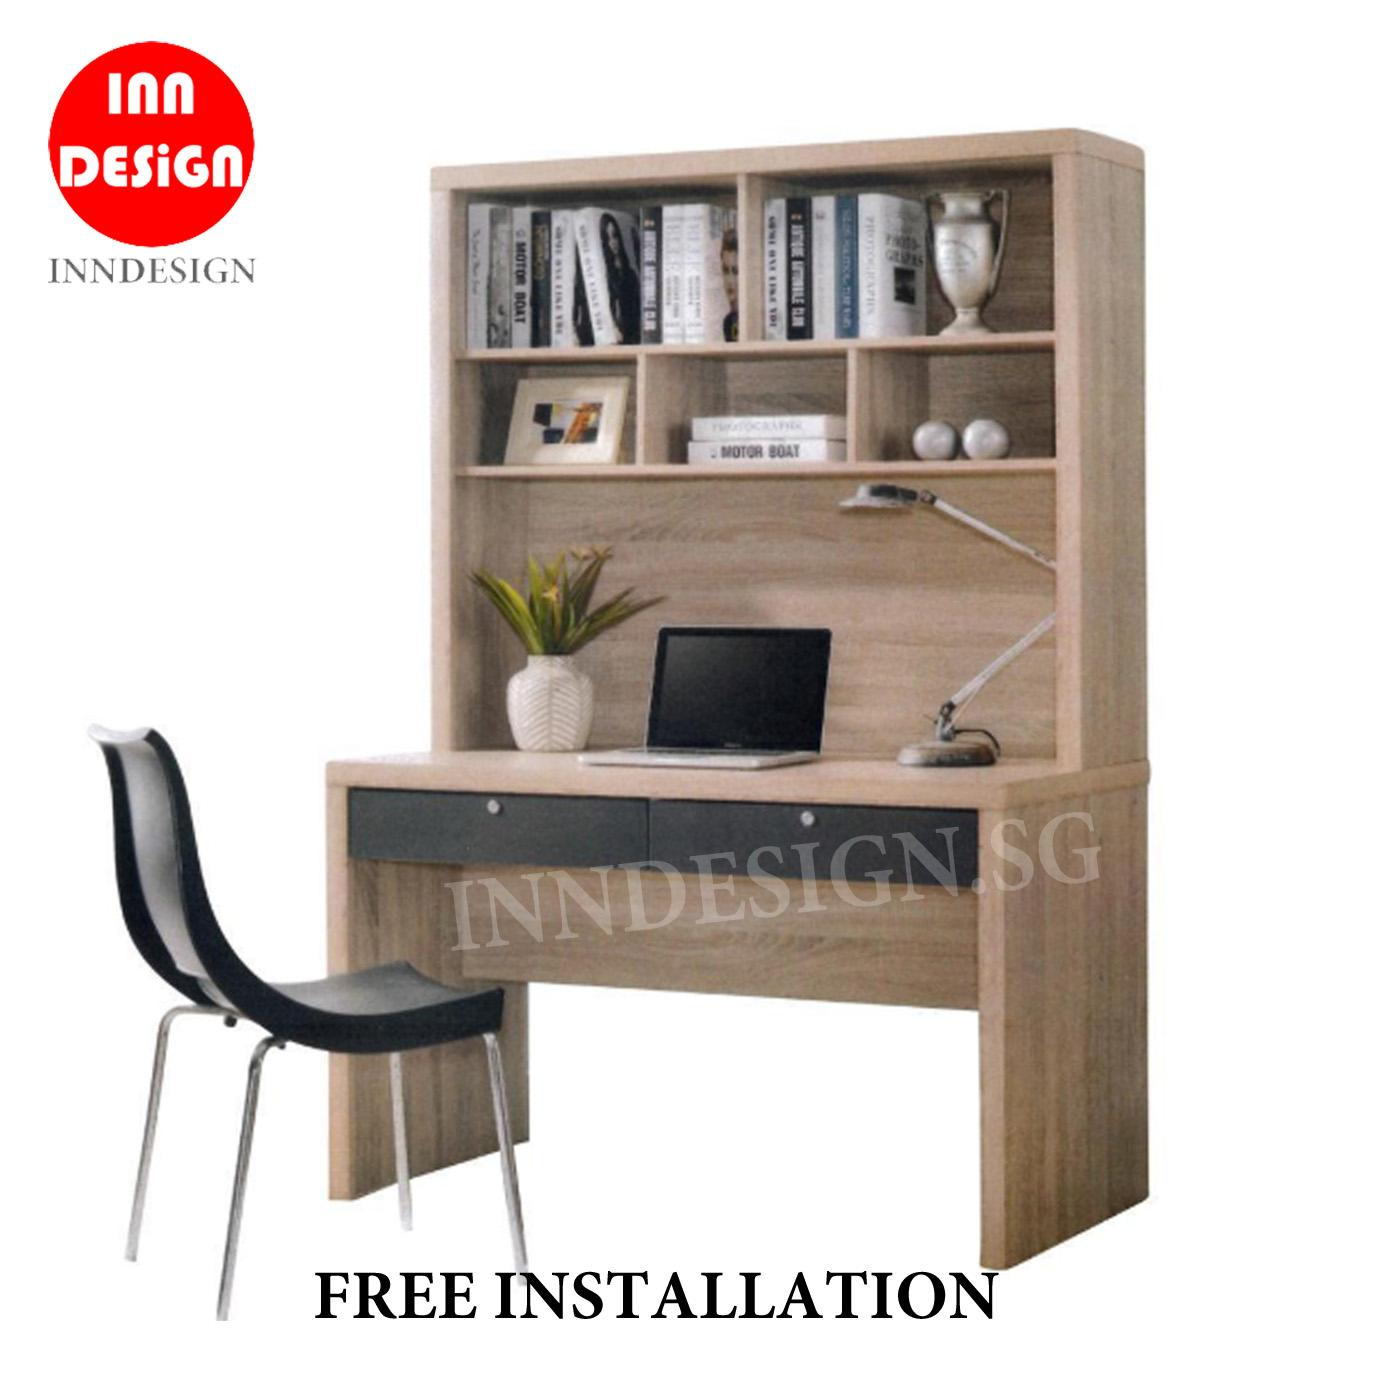 [6 MONTHS WARRANTY] [BEST SELLING] [FREE INSTALLATION] Niro Study Table with Hutch